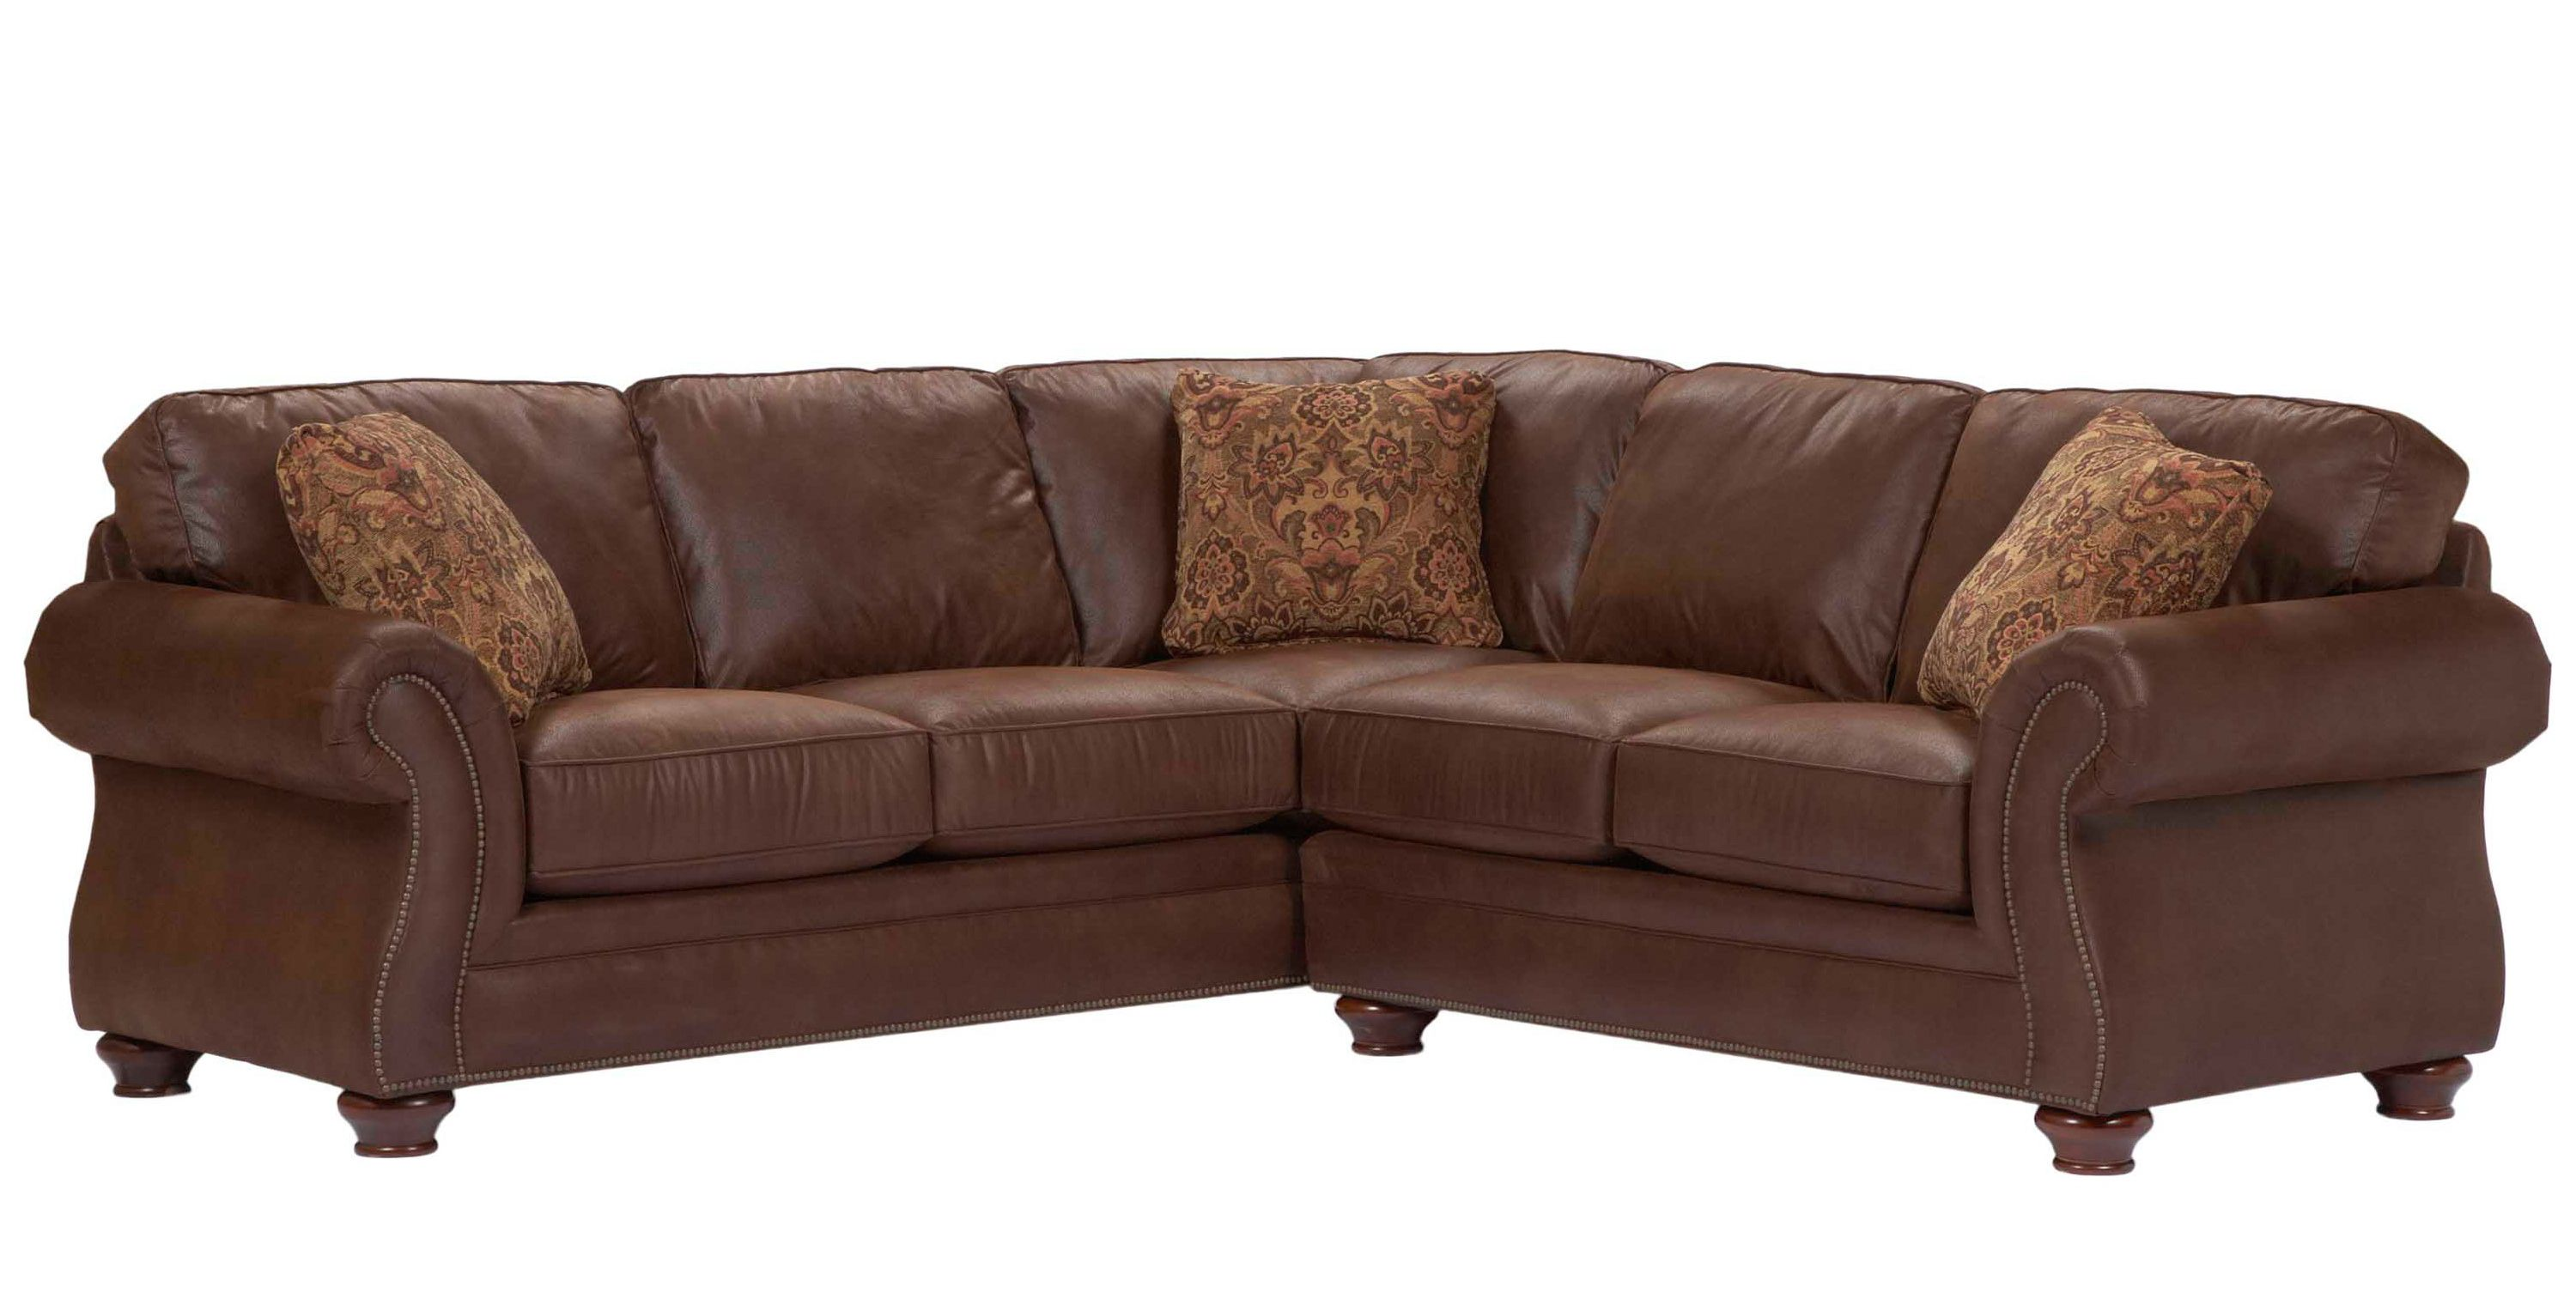 Broyhill Sectional Sofa Broyhill Furniture Corner Sectional